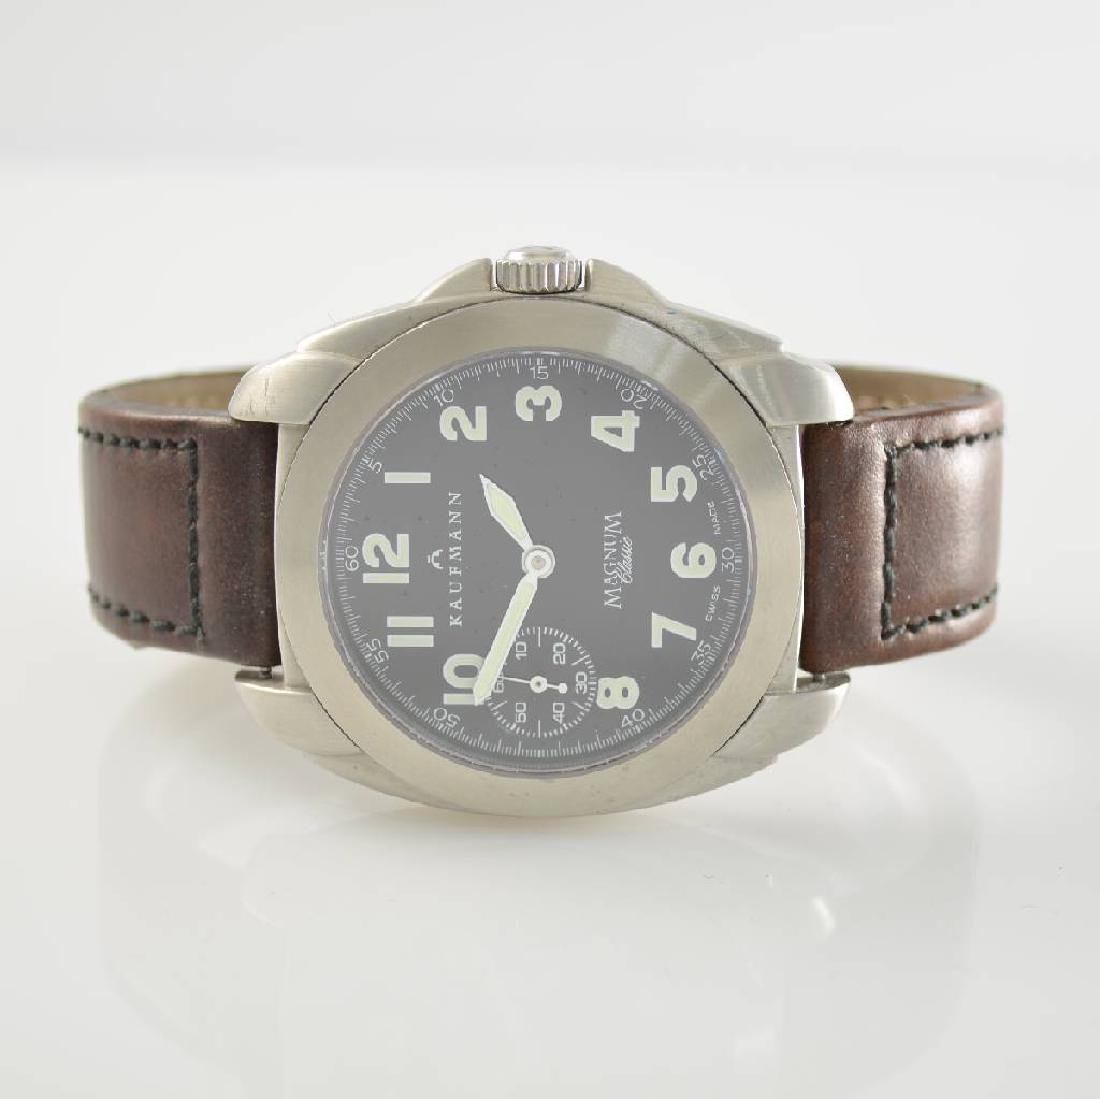 KAUFMANN manual wound gents wristwatch model Magnum